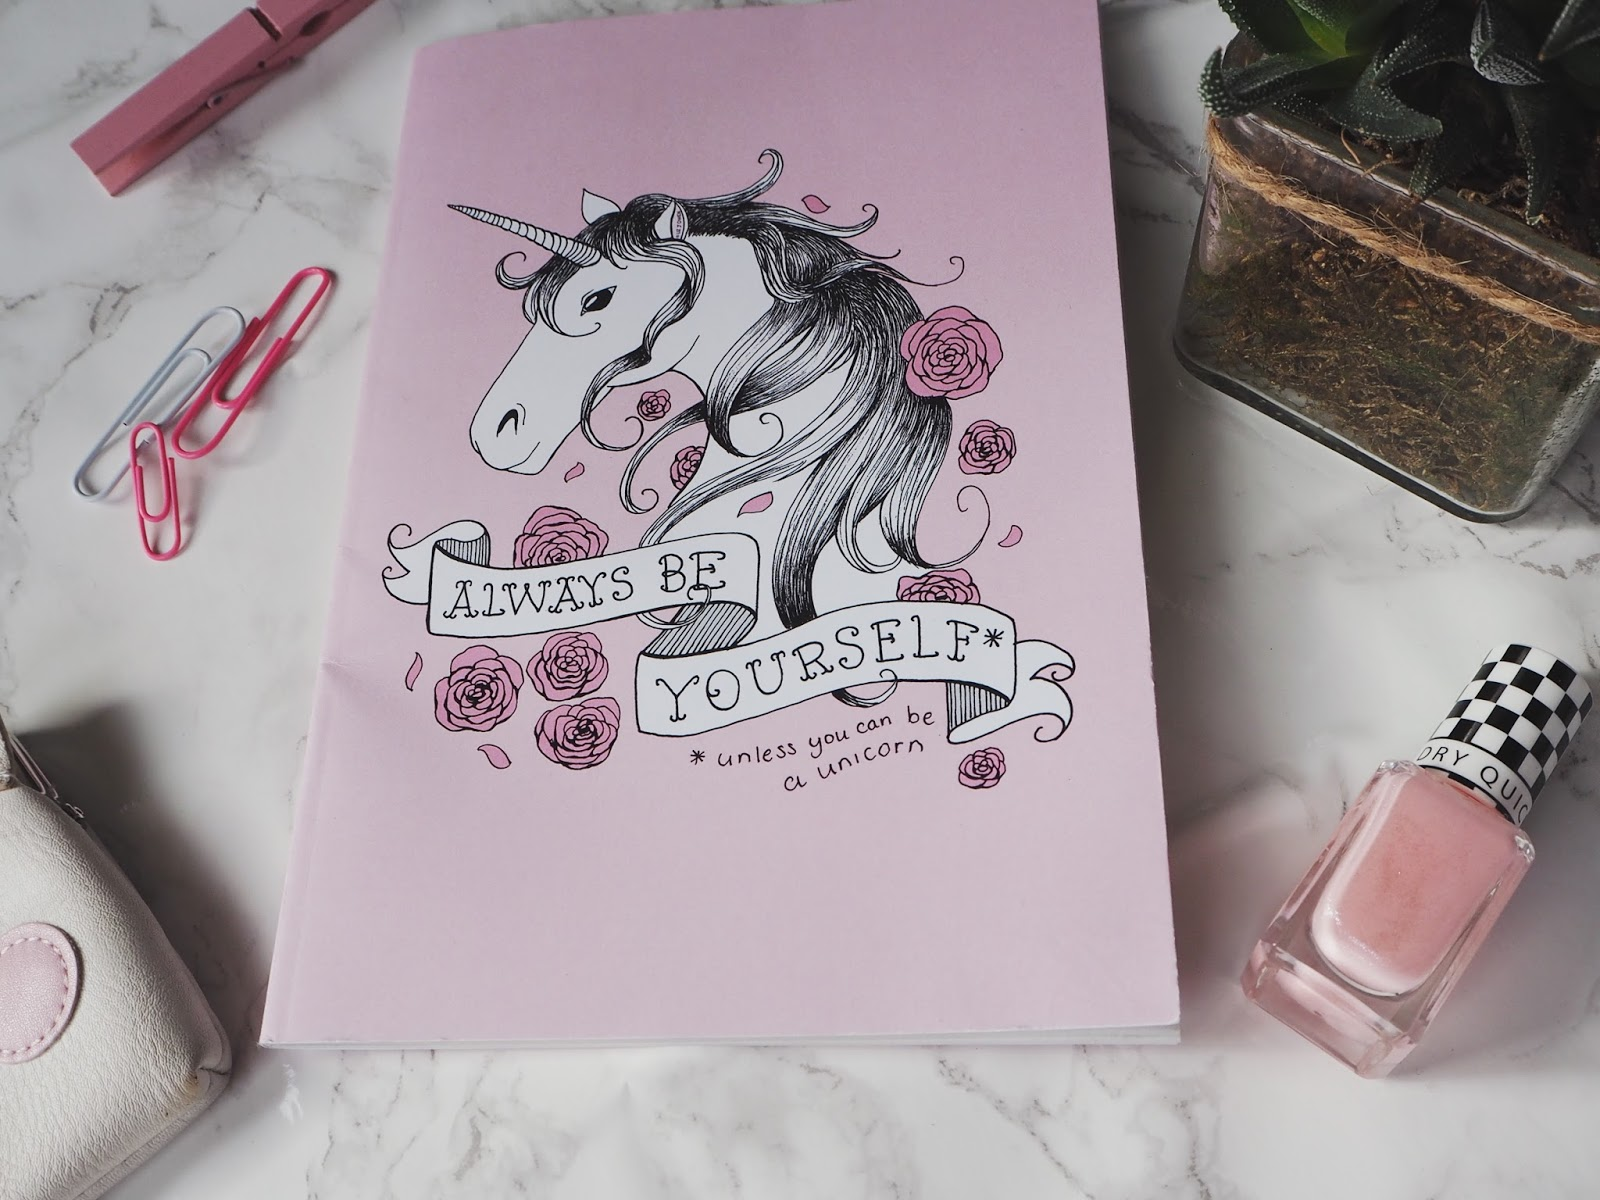 The cutest notebook I ever did see! Love, Maisie